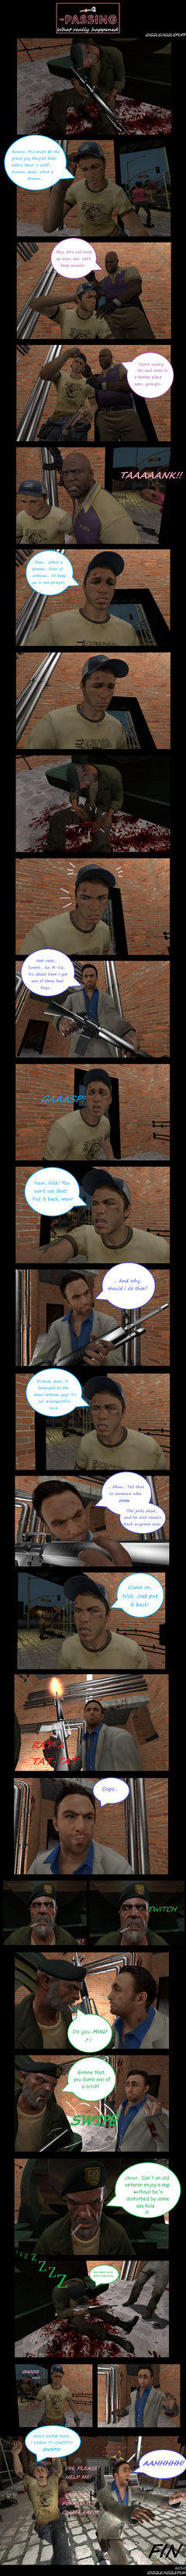 L4D2 The Passing: NO TOUCHY by Gigglejigglepuff